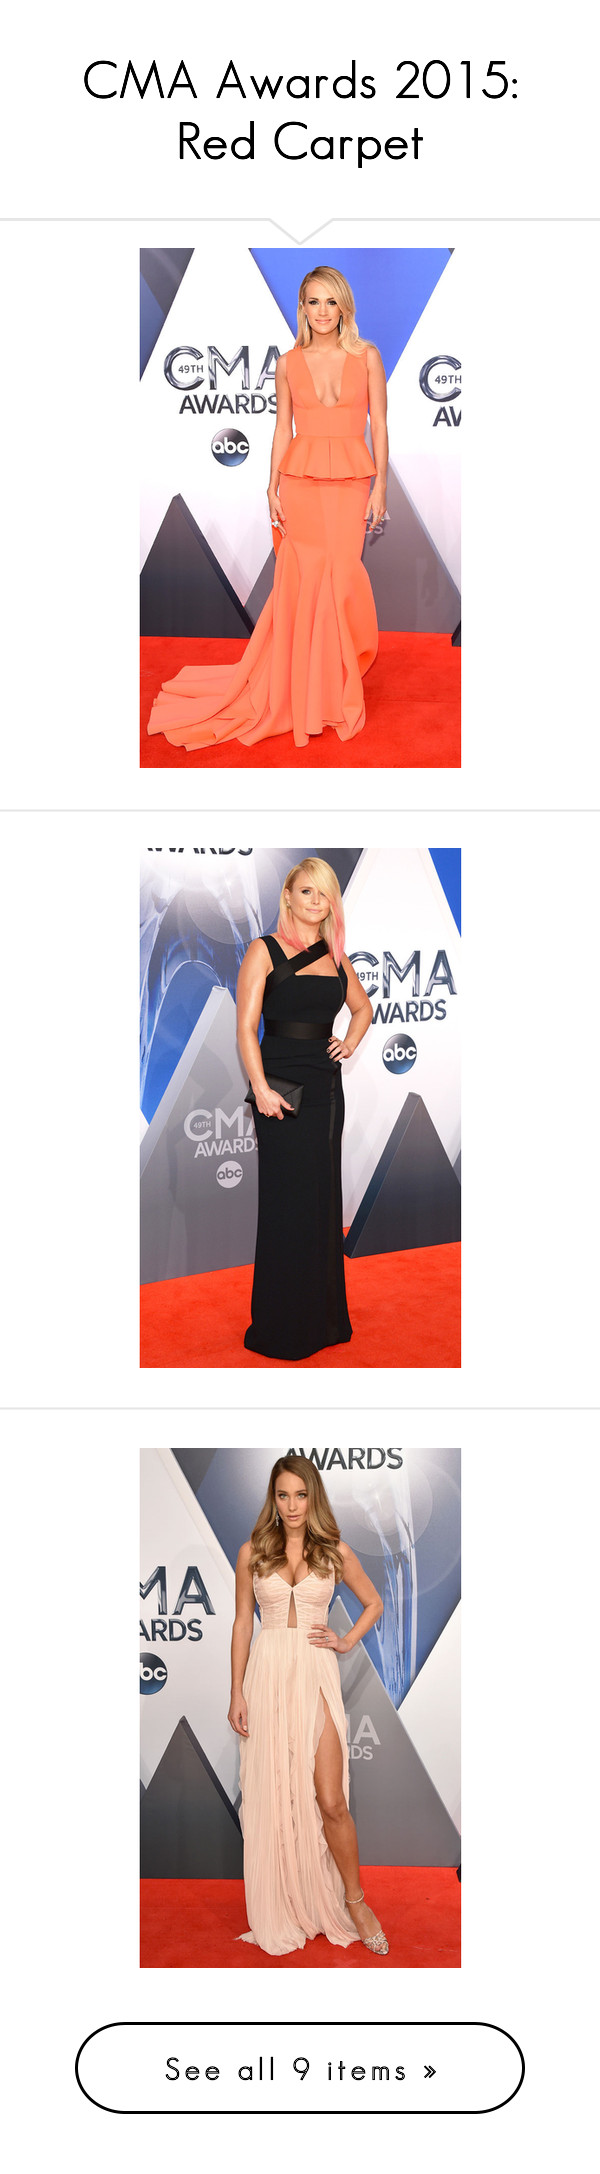 """""""CMA Awards 2015: Red Carpet"""" by polyvore-editorial ❤ liked on Polyvore featuring RedCarpet, cma and accessories"""